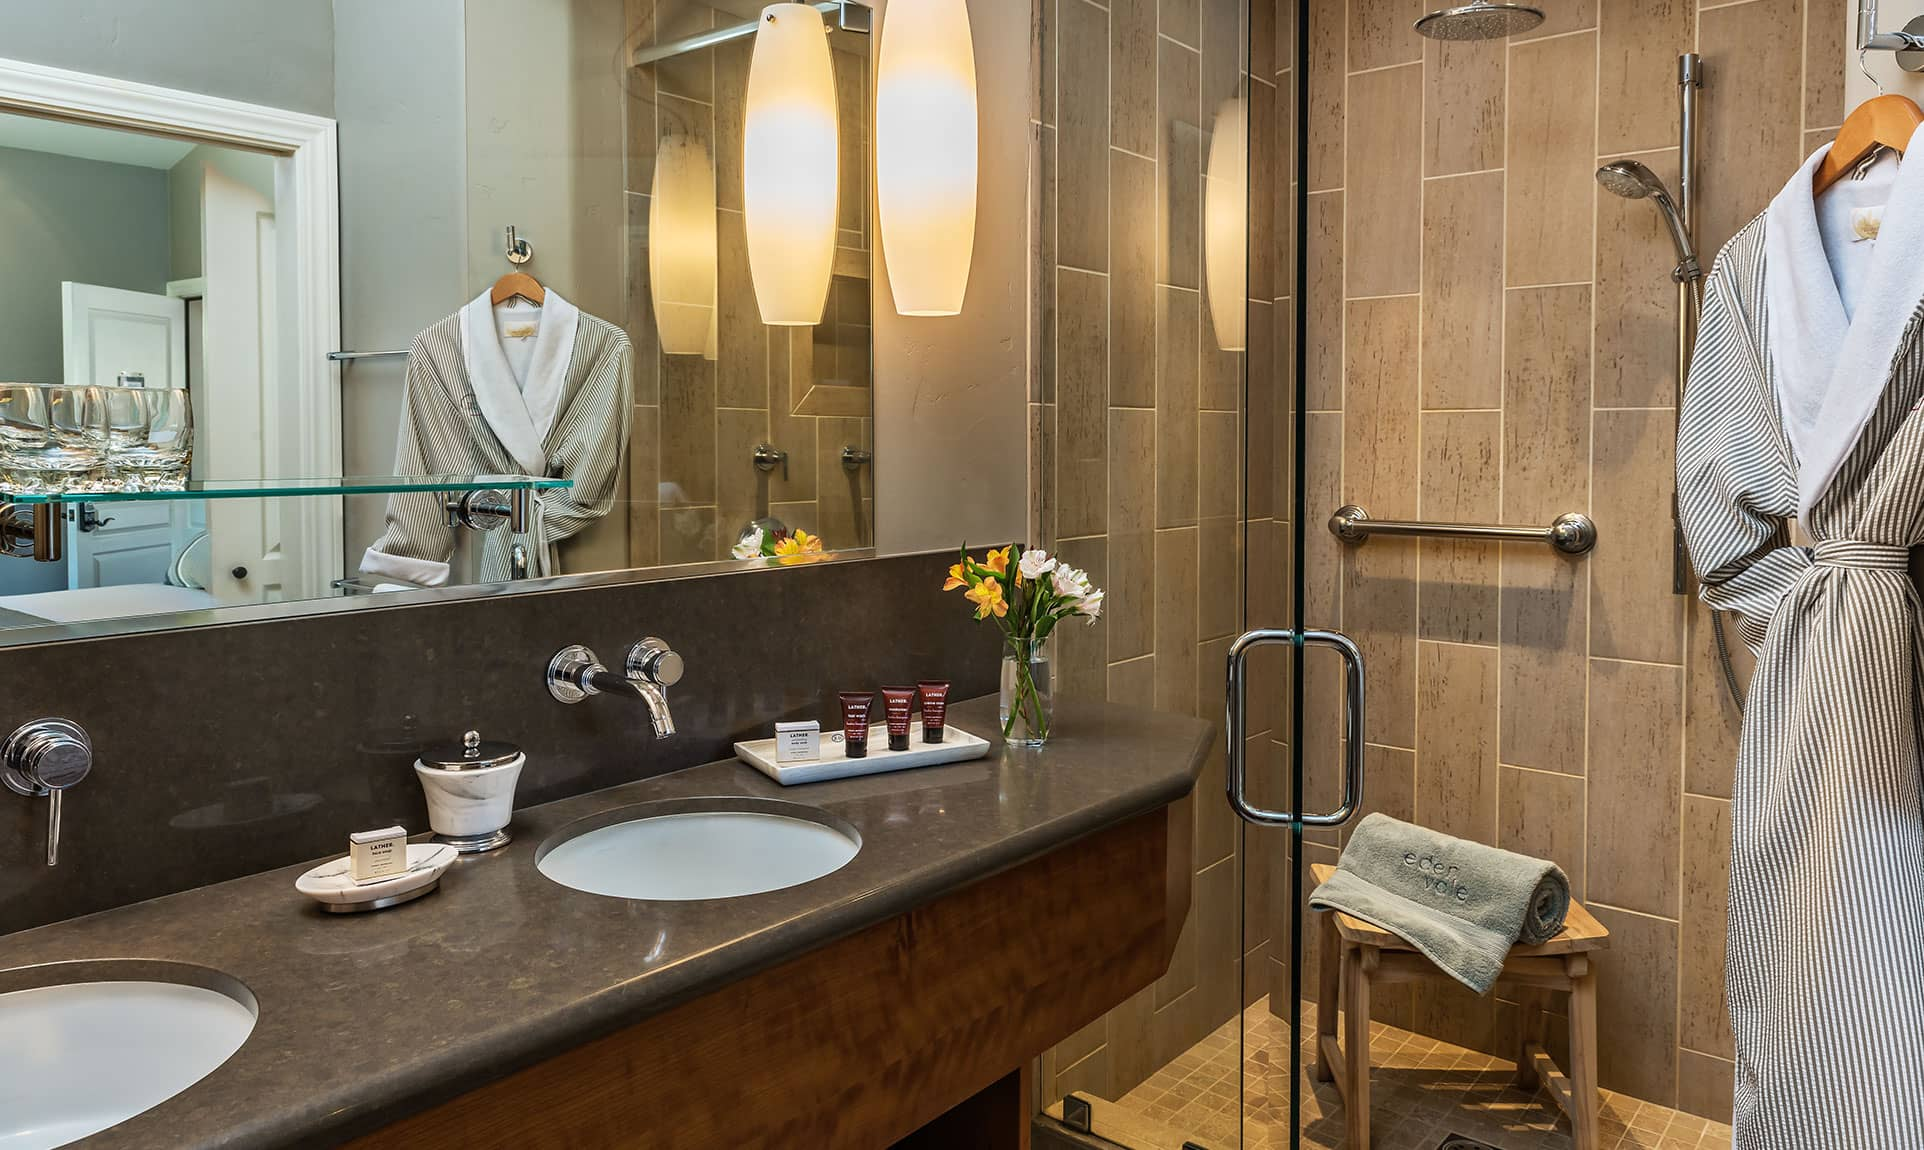 Clean chic bathroom in the Gray Pine Room